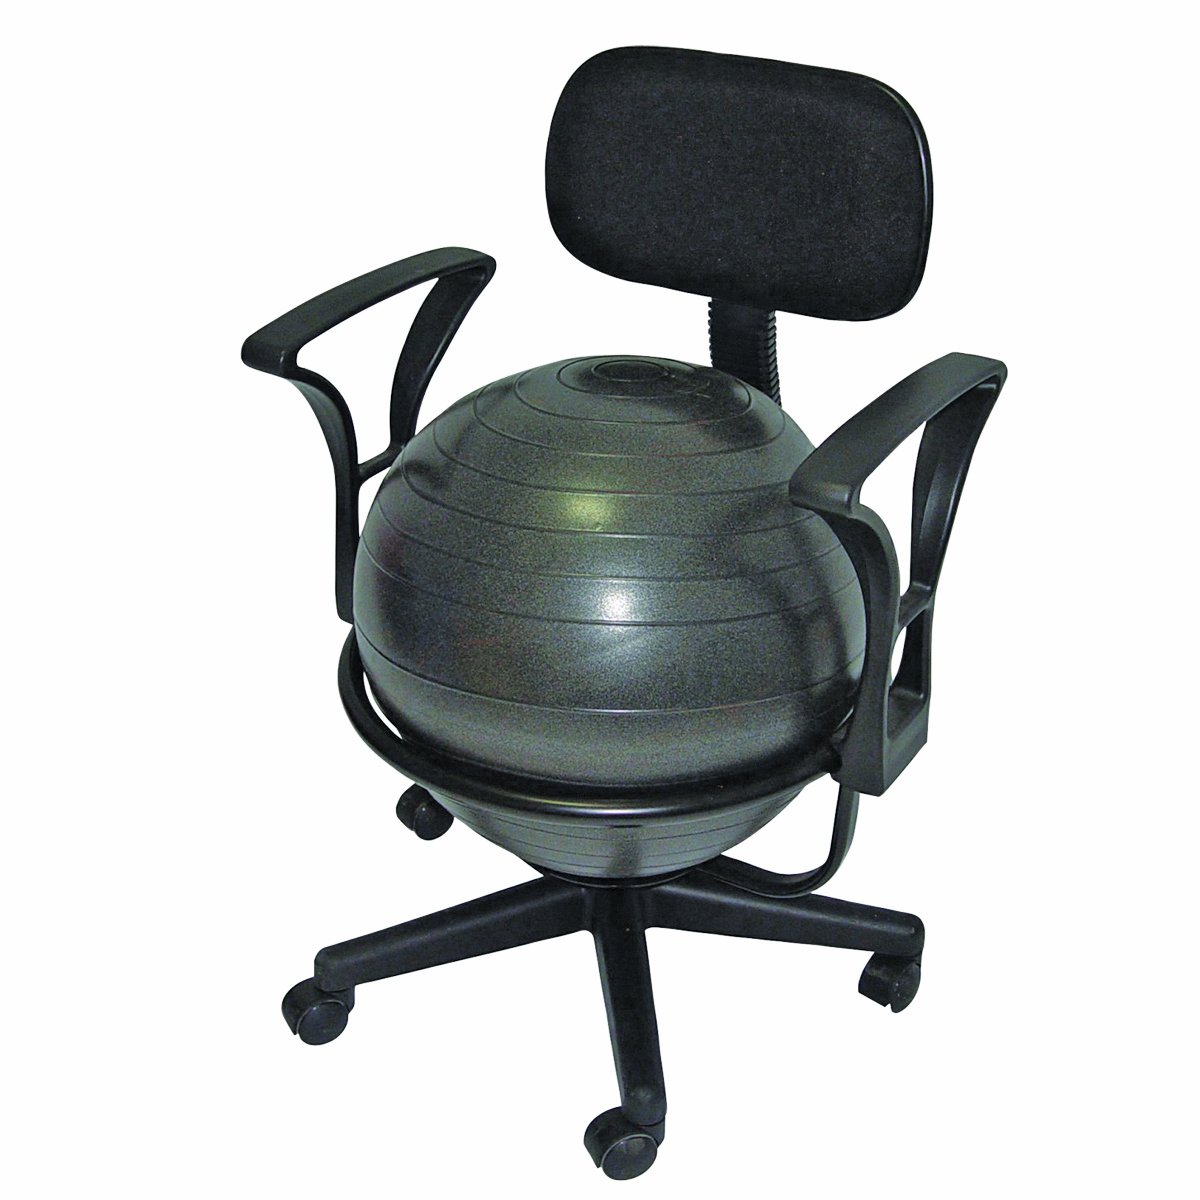 Amazoncom CanDo Metal Ball Chair With Arms Industrial - Ball chair